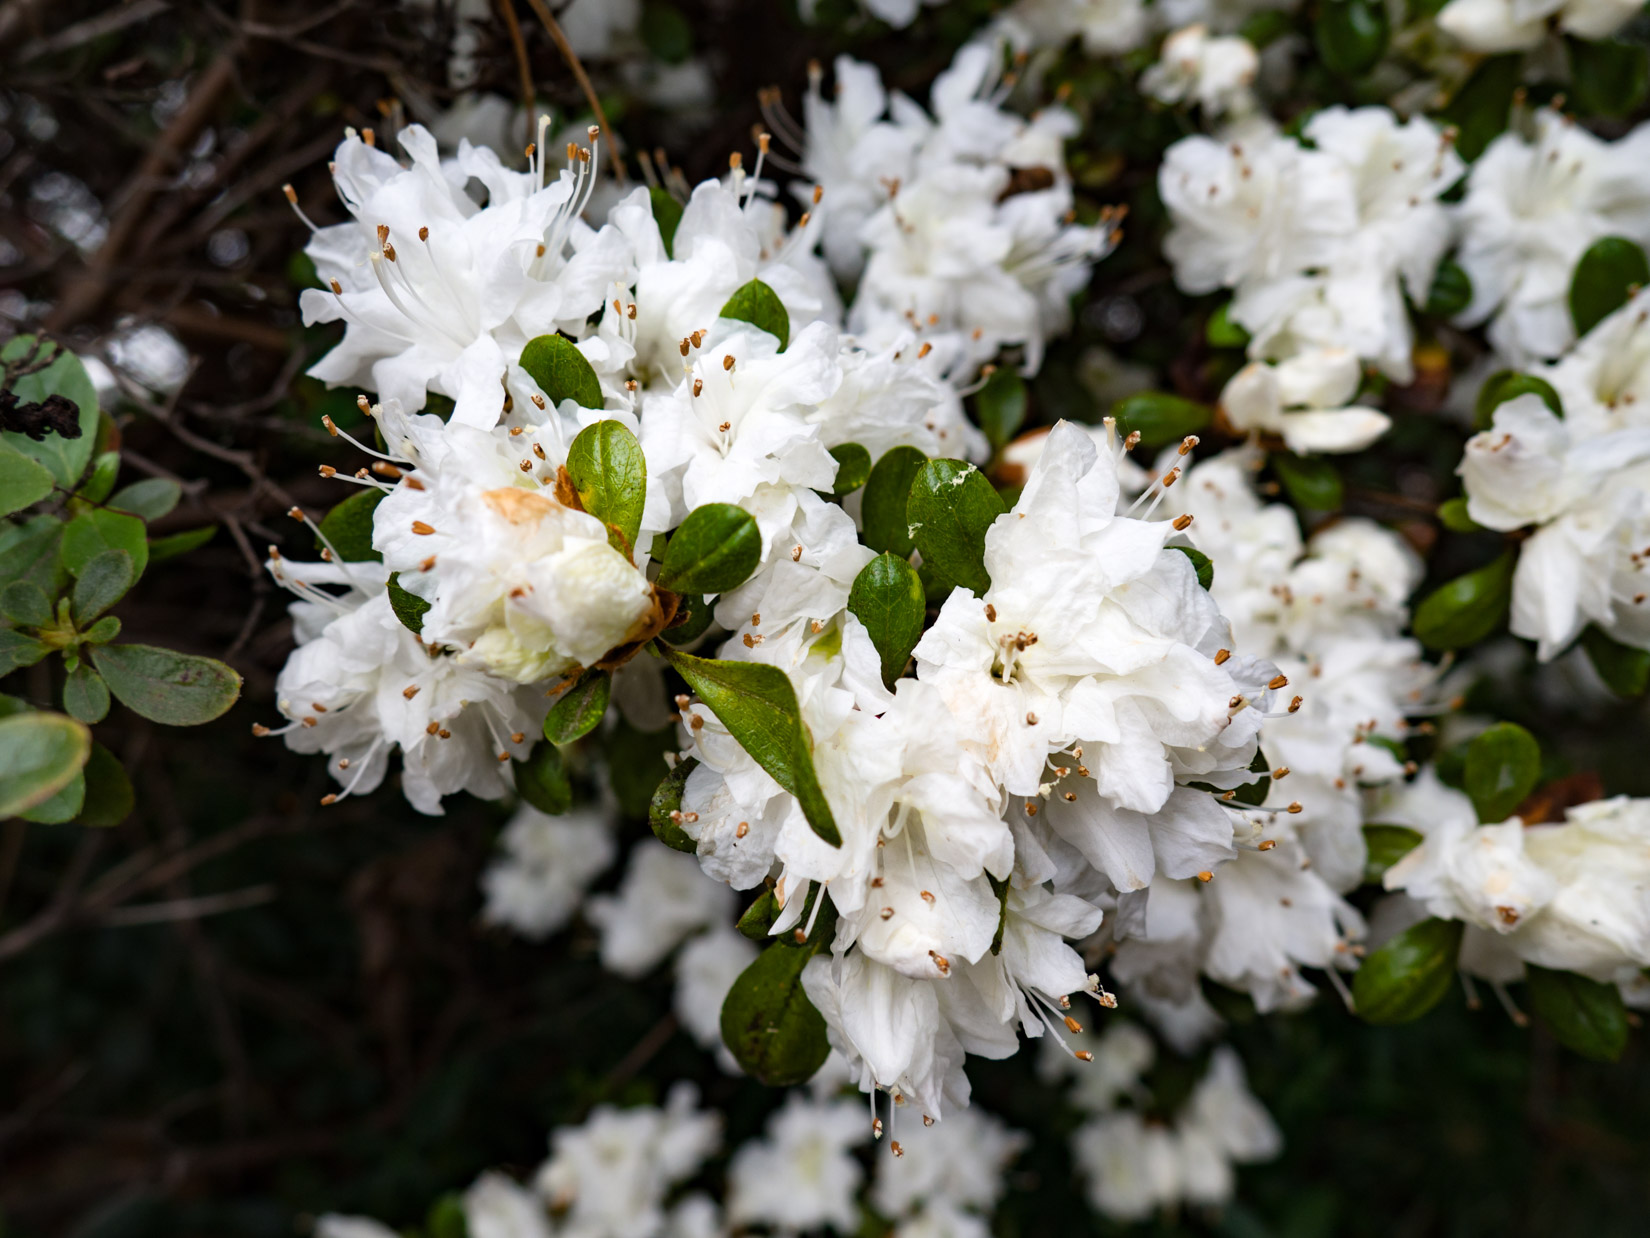 White Flowers on Bush